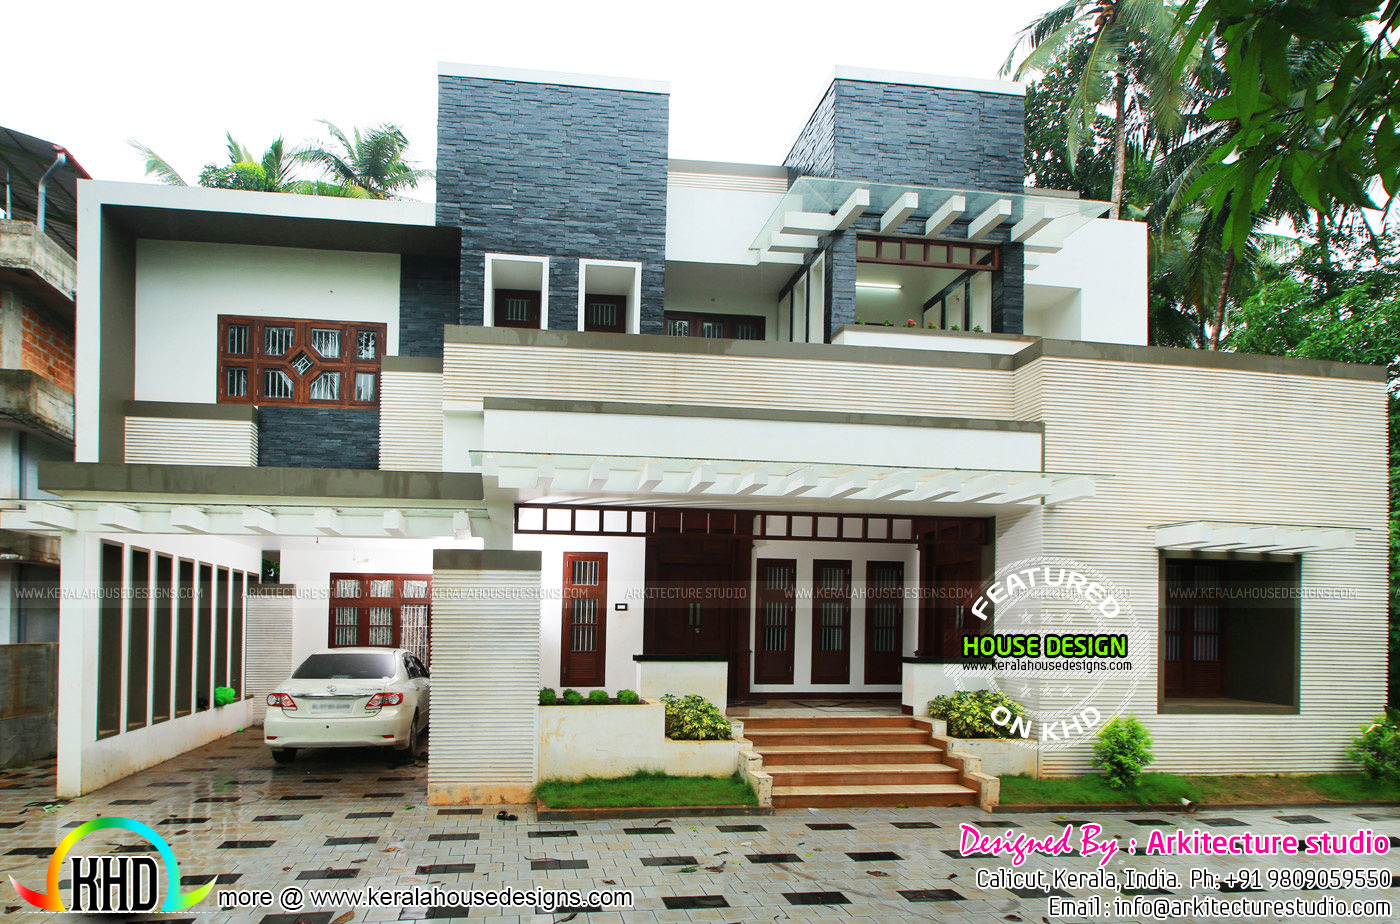 5000 sq ft house work finished kerala home design and for 5000 sq ft house plans in india